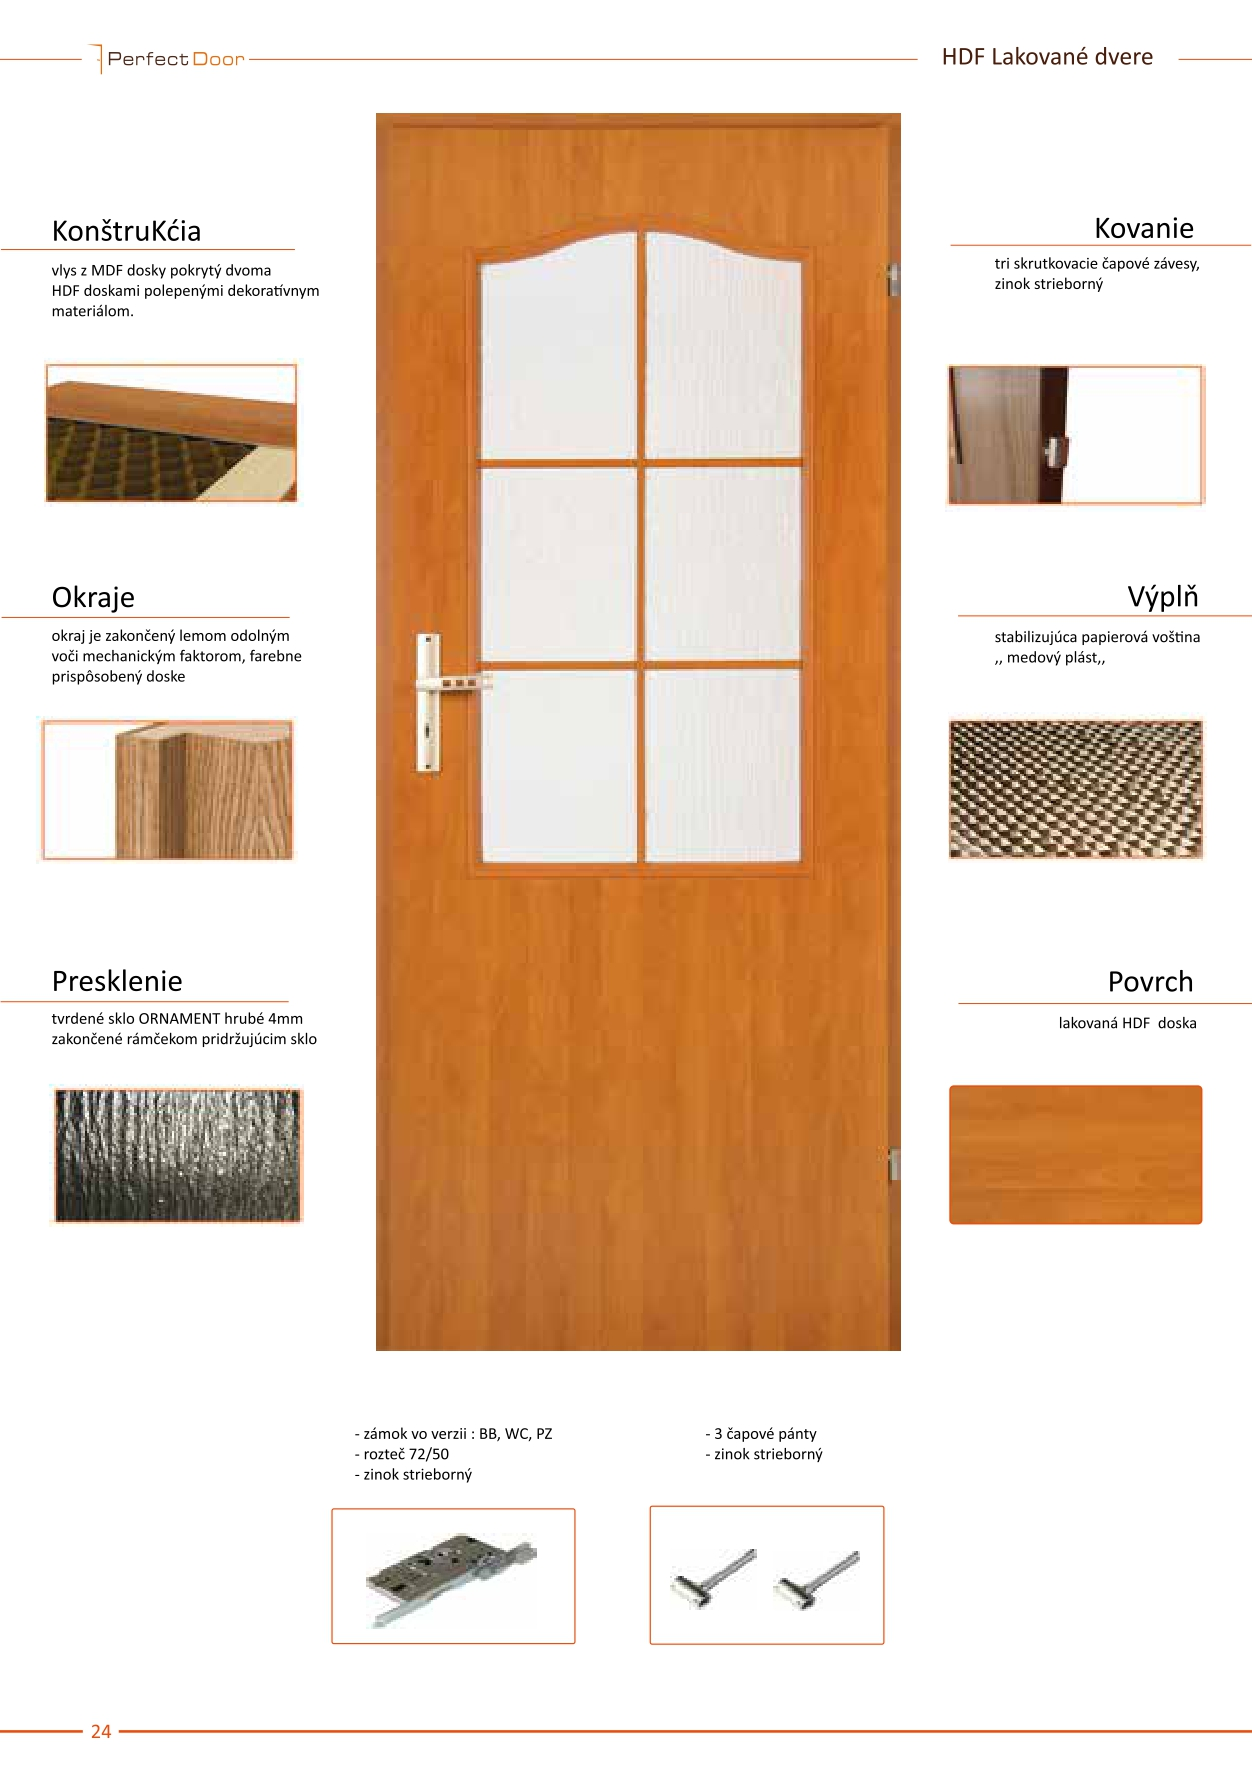 Perfectdoor katalog  1 2019 pages-to-jpg-0024